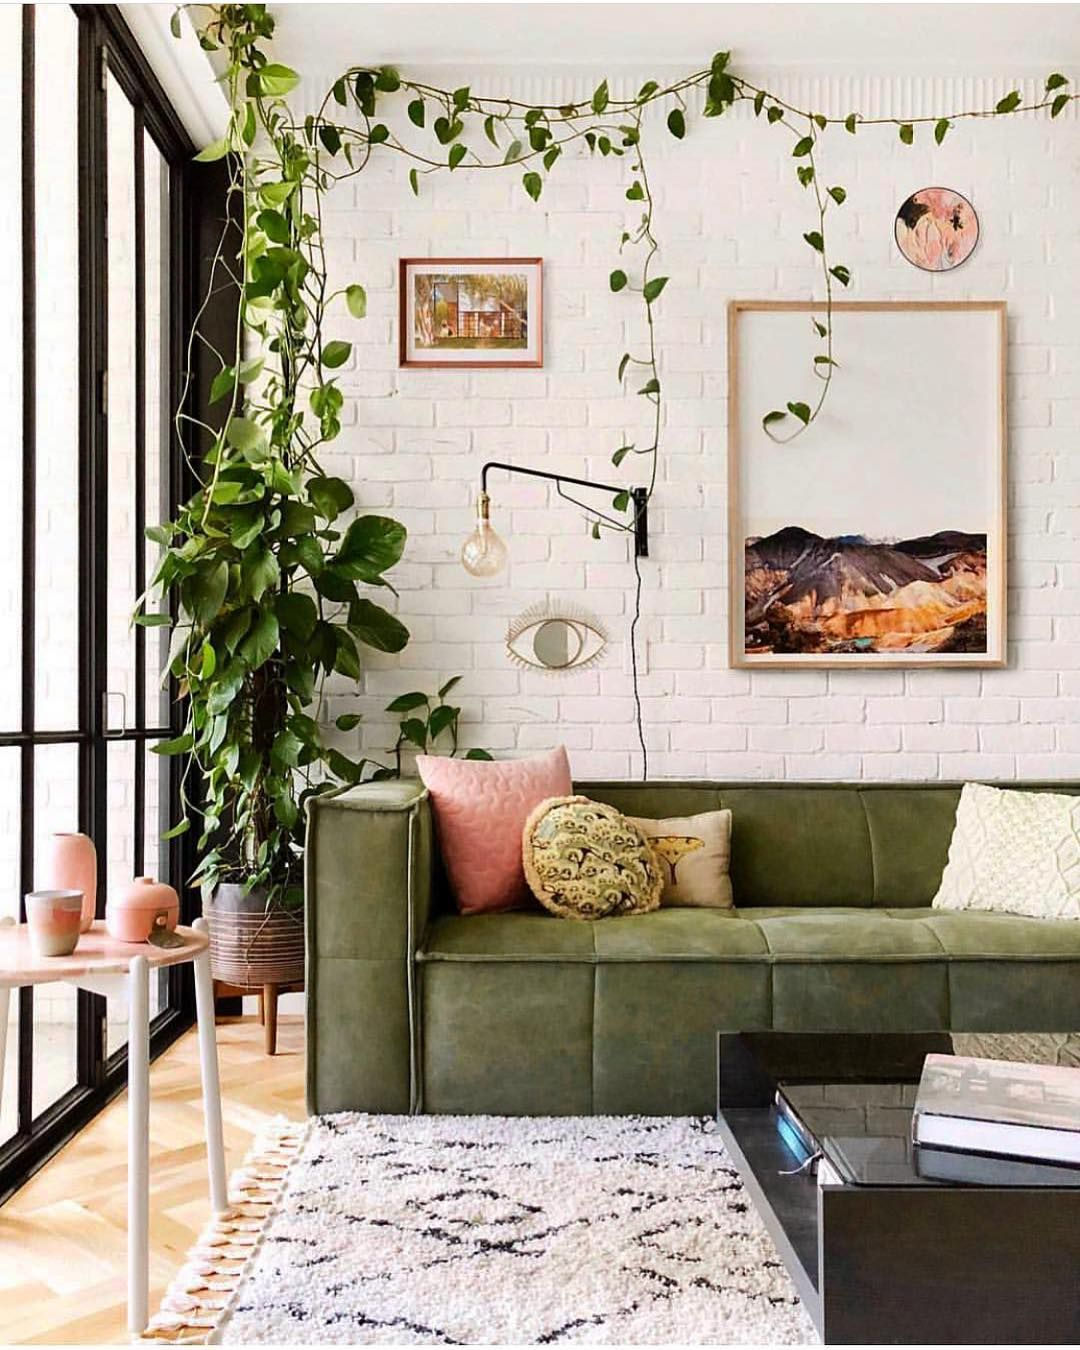 [ Inspiration couleur ] Green Green, it's spring! - Decorative Turbulence